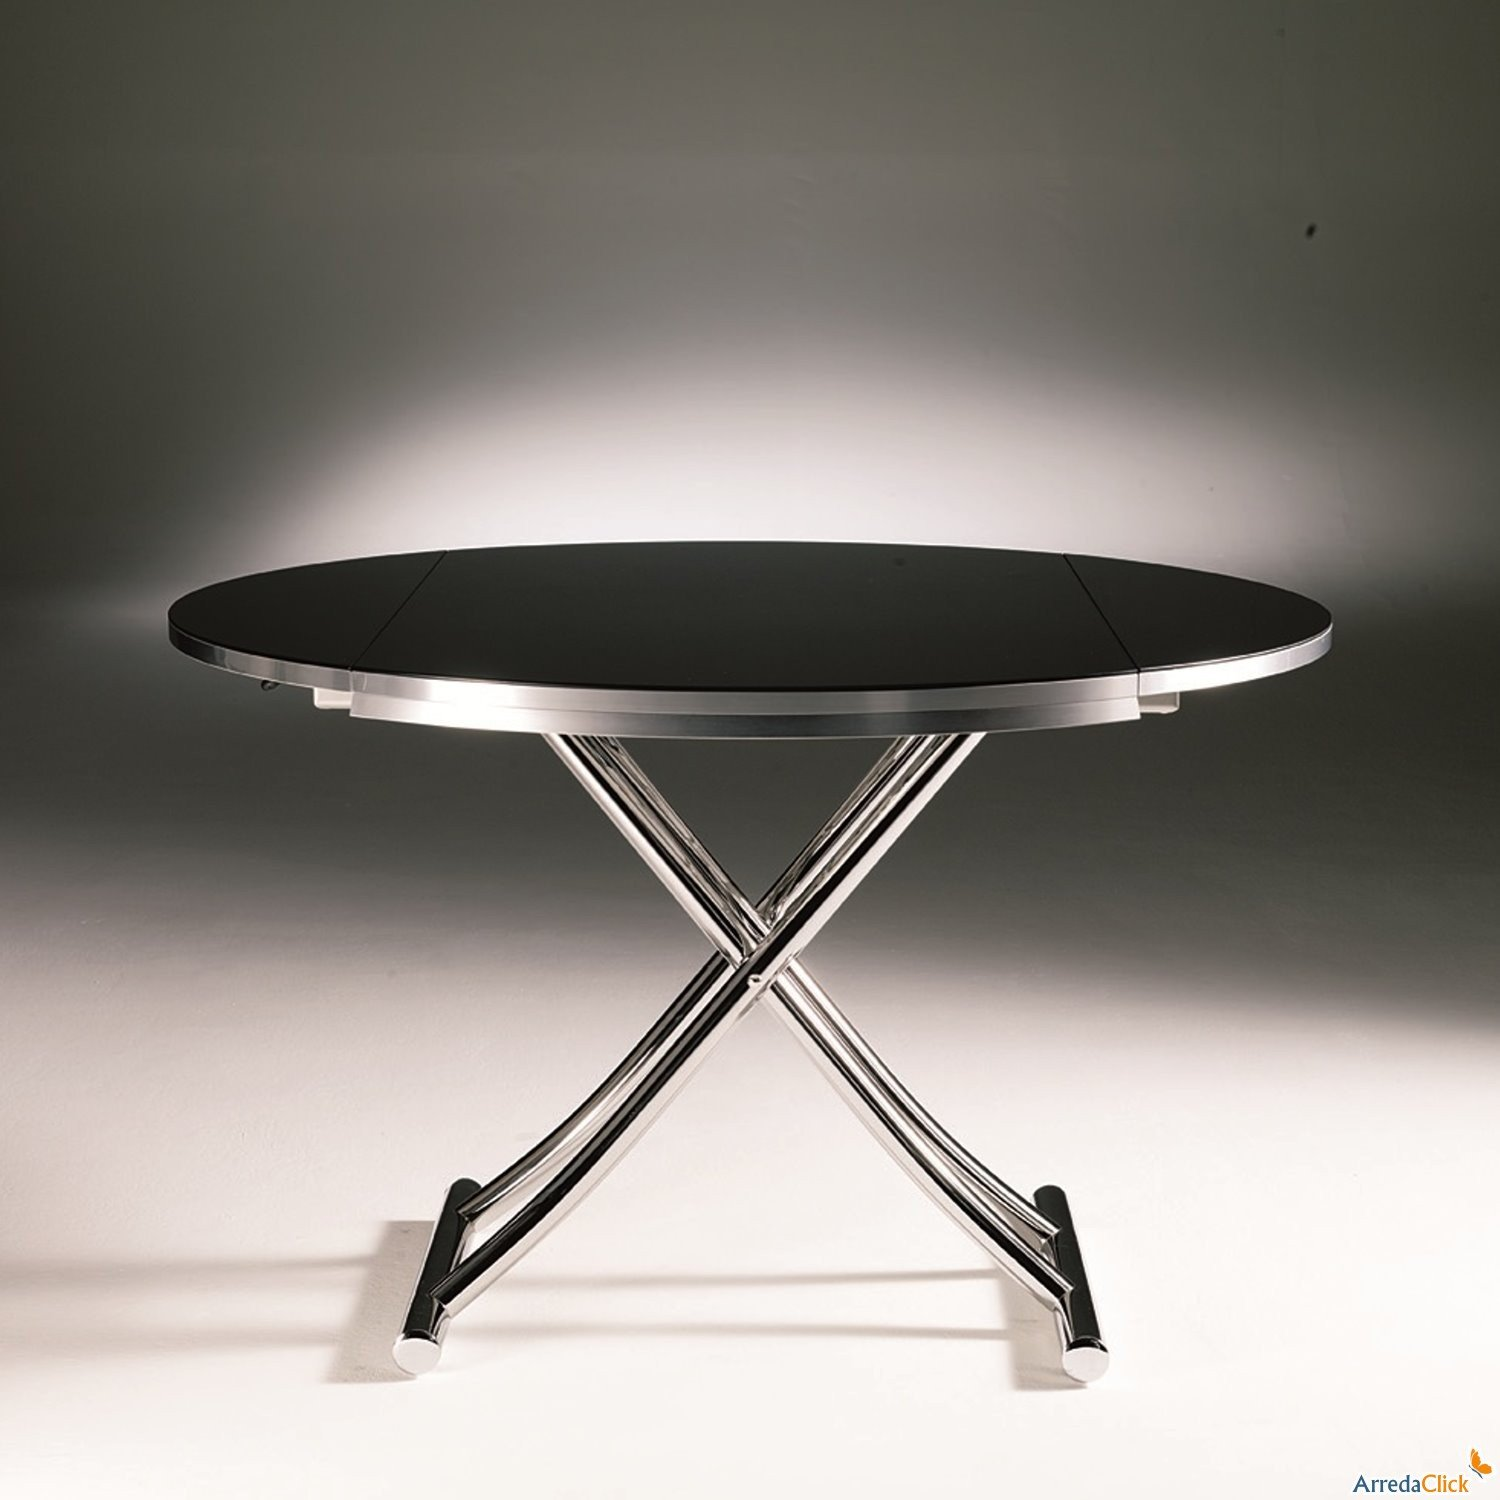 Table basse relevable le guide ultime les designs et les syst mes - Table relevable en verre ...